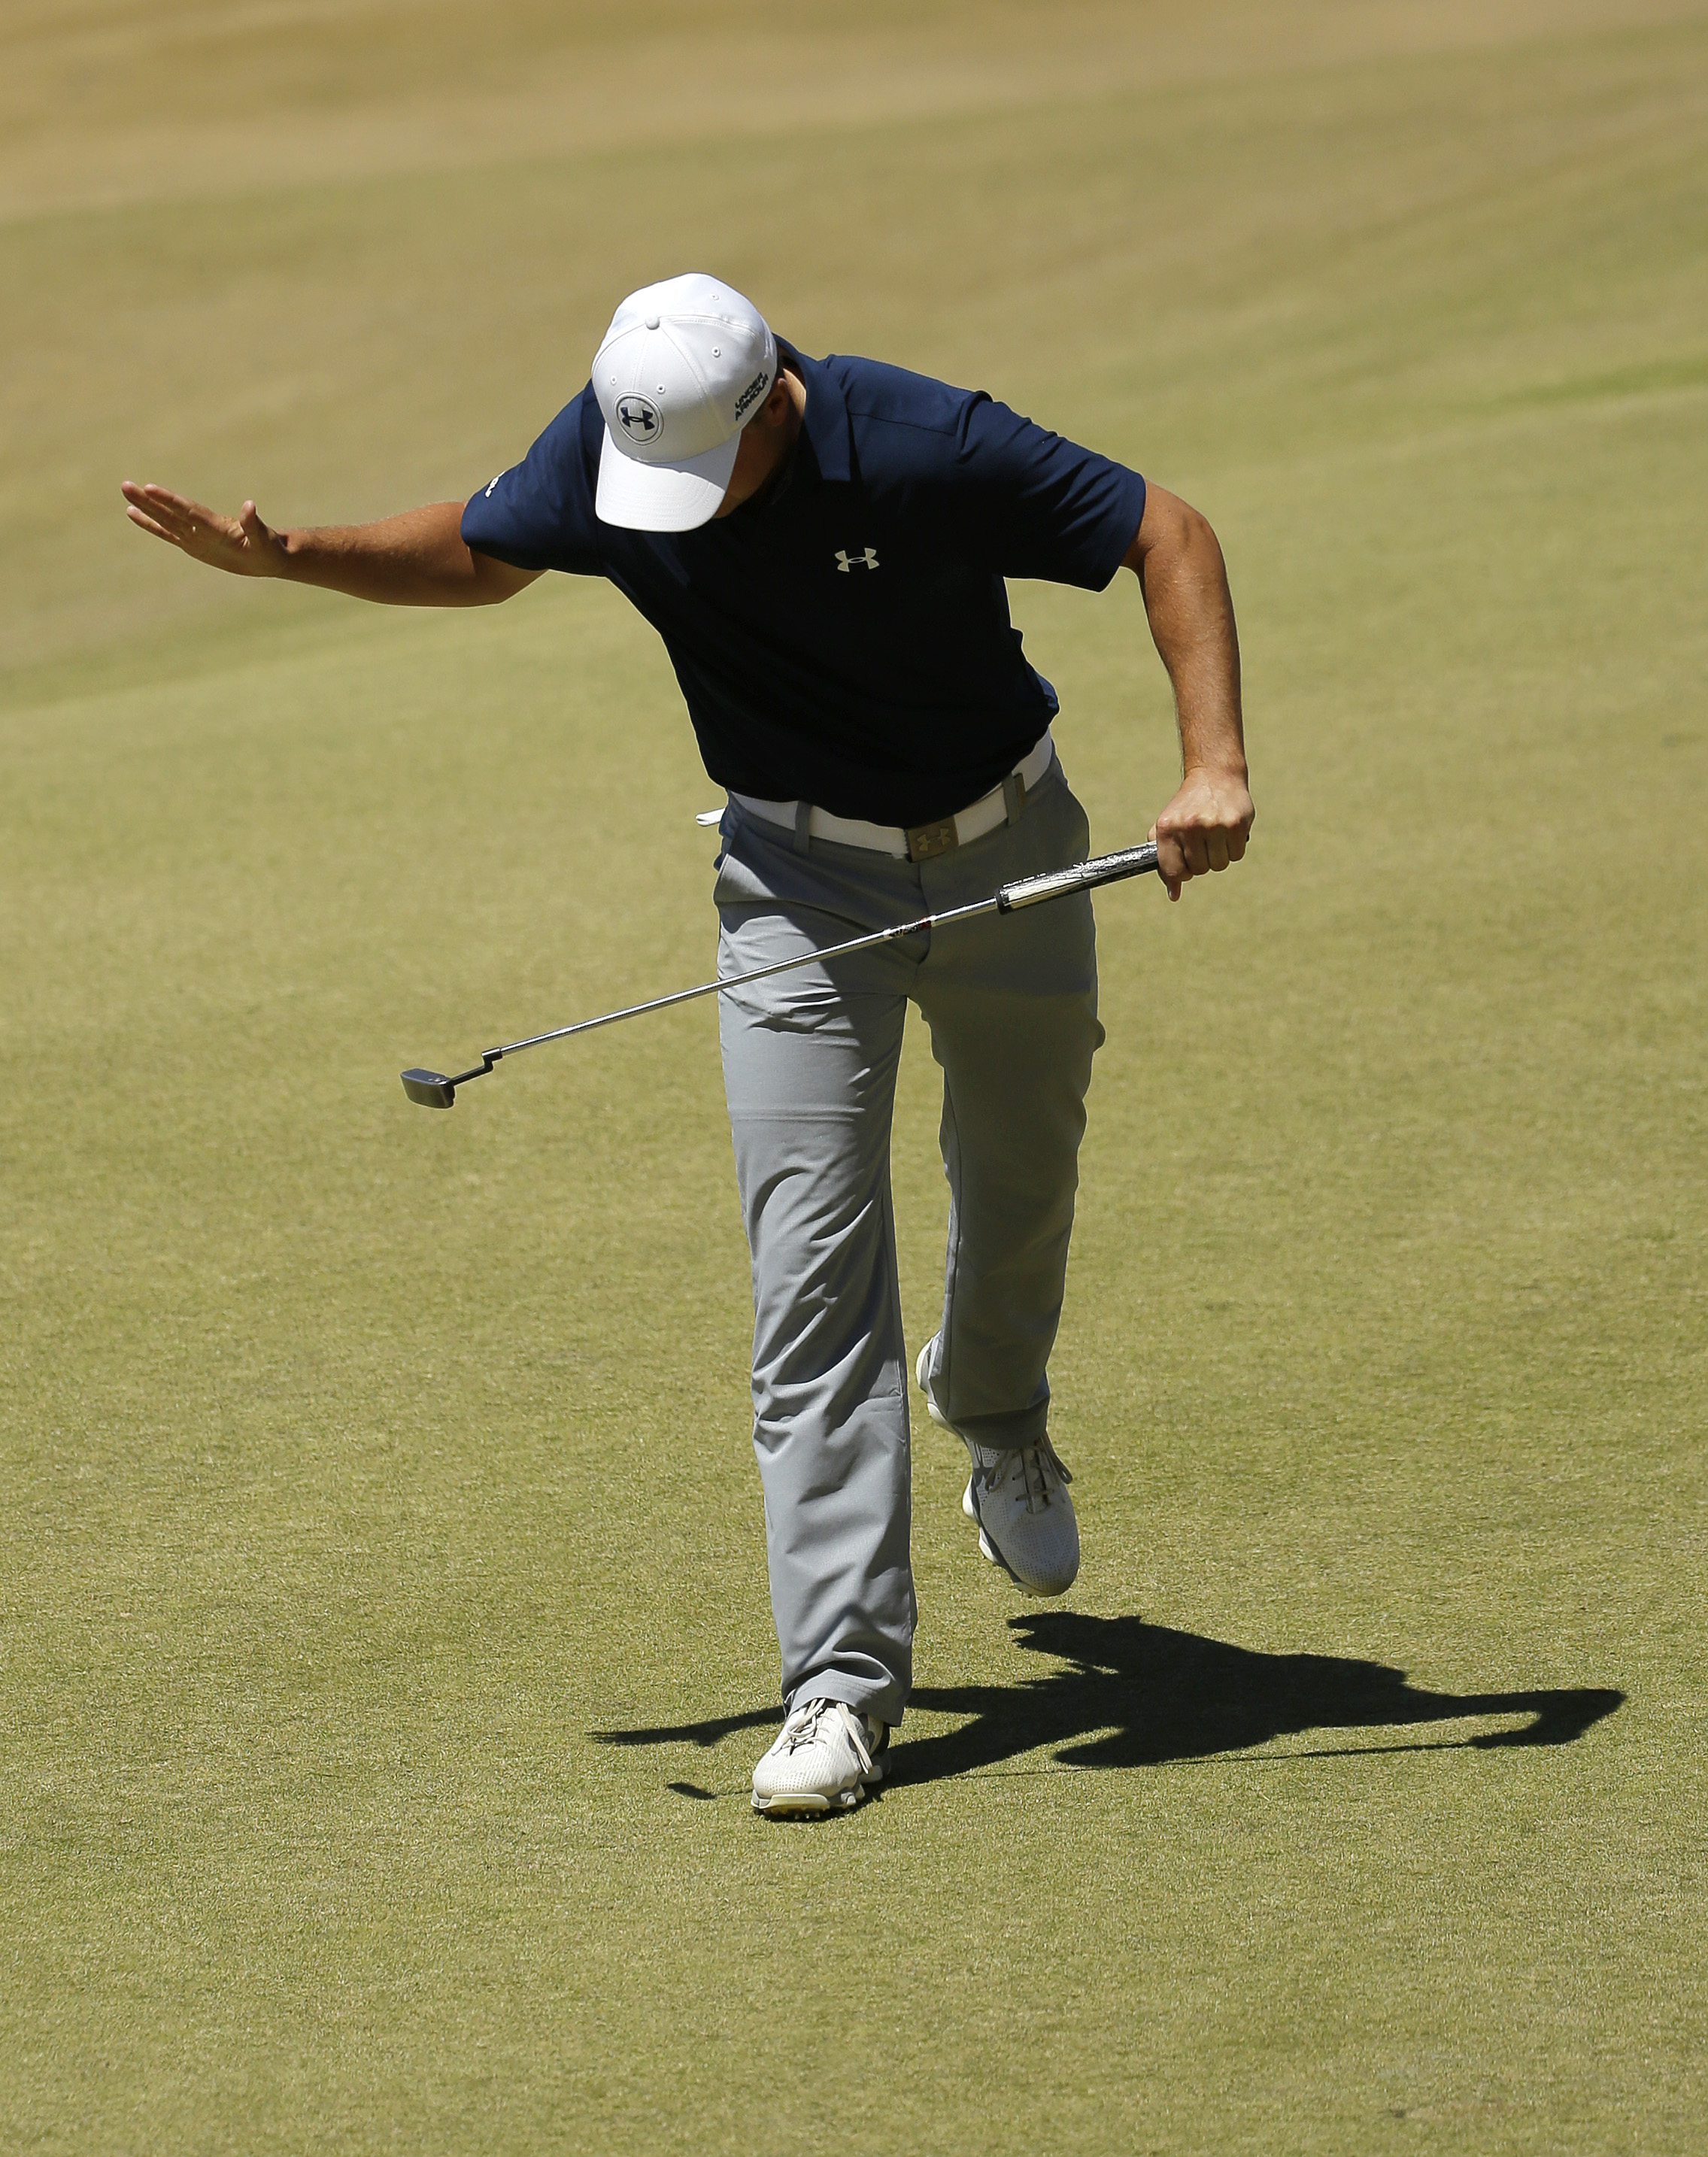 Jordan Spieth slaps his putter after missing a putt on the seventh hole during the second round of the U.S. Open golf tournament at Chambers Bay on Friday, June 19, 2015 in University Place, Wash. (AP Photo/Ted S. Warren)